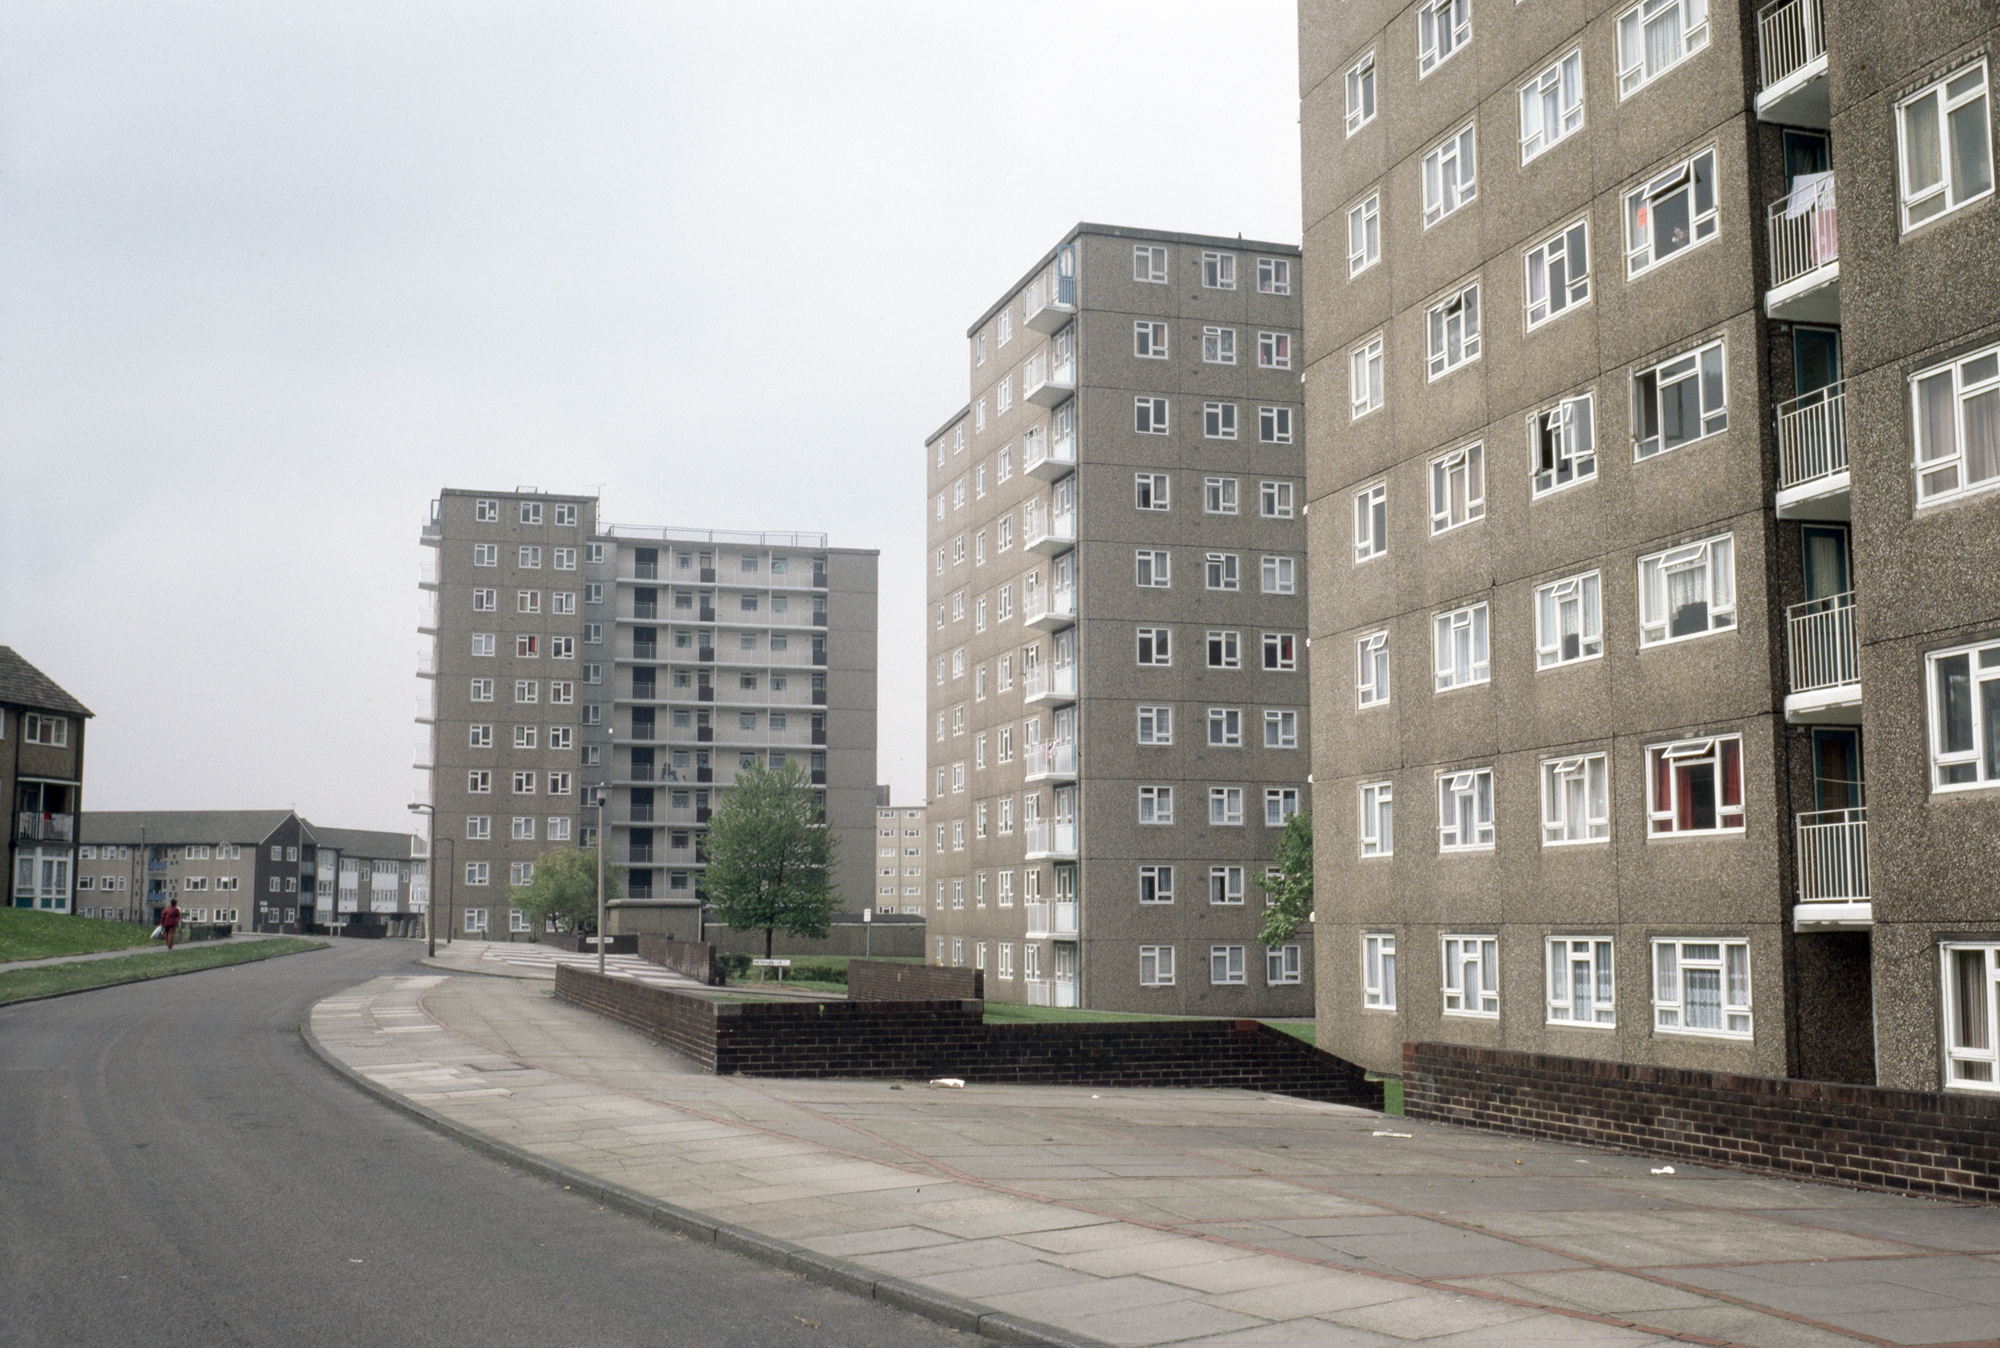 Ebor Gardens Tower Block